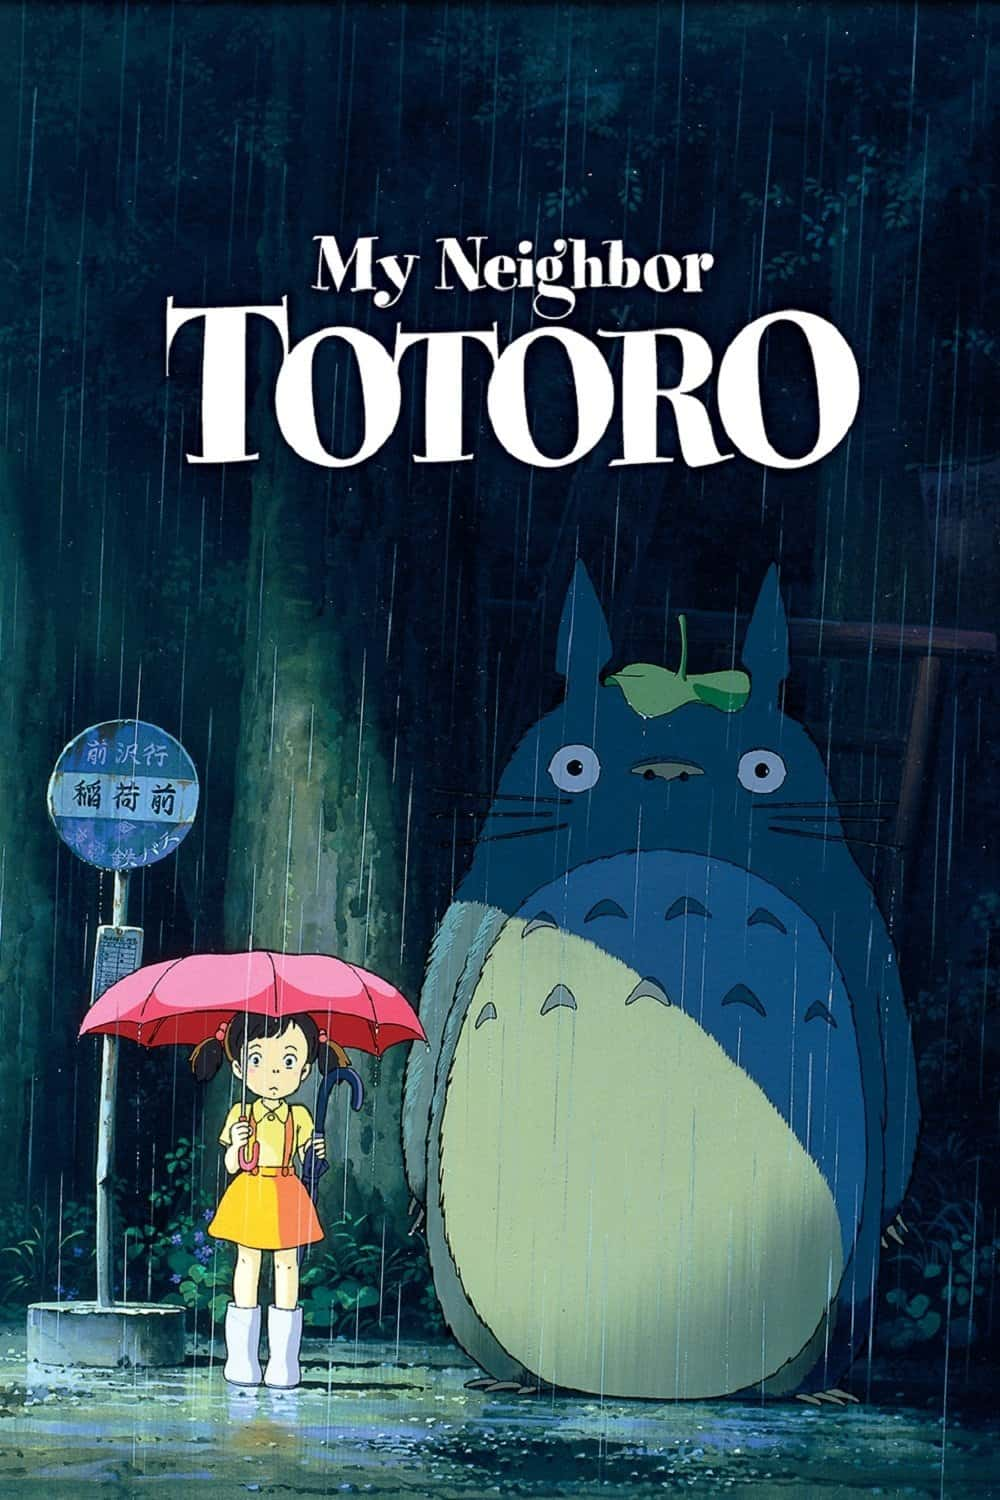 My Neighbor Totoro,1988